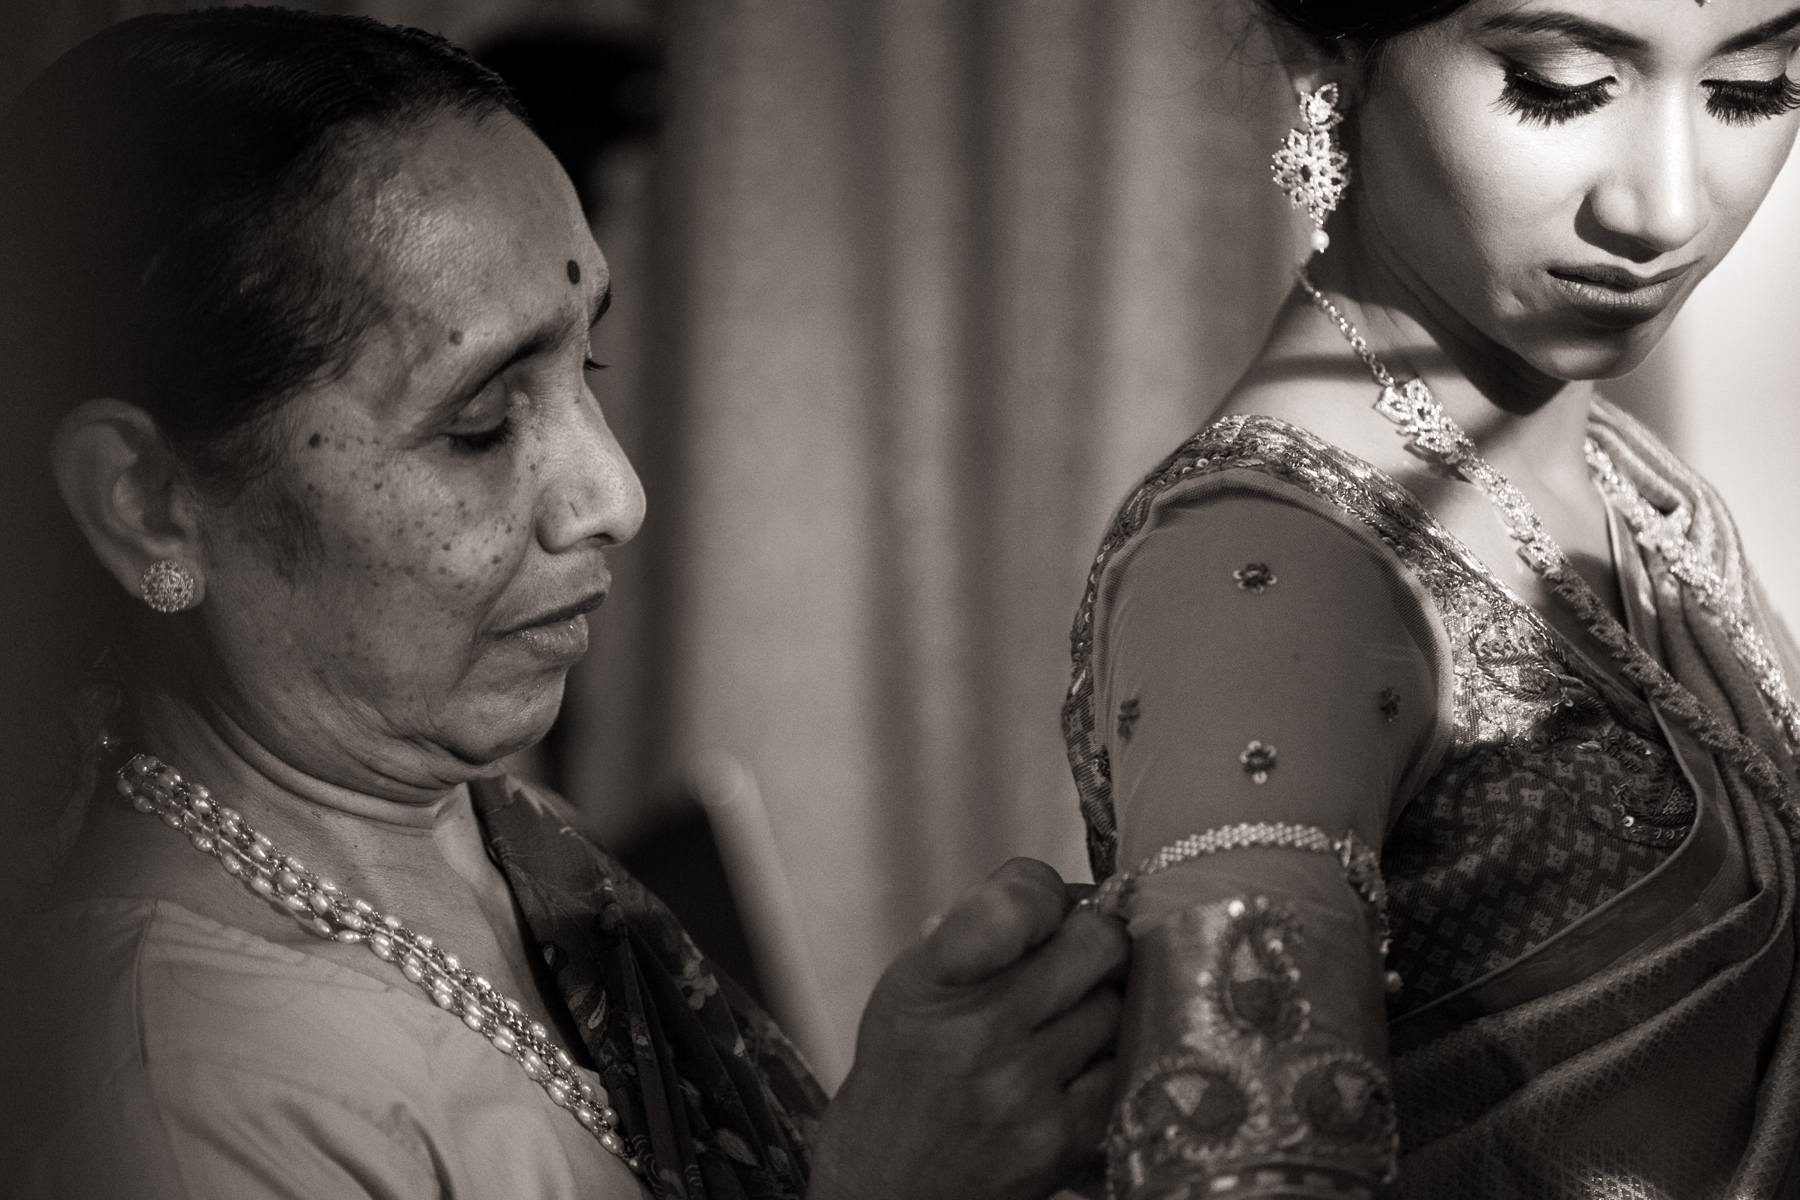 indian-south-asian-wedding-getting-ready-details-46.jpg